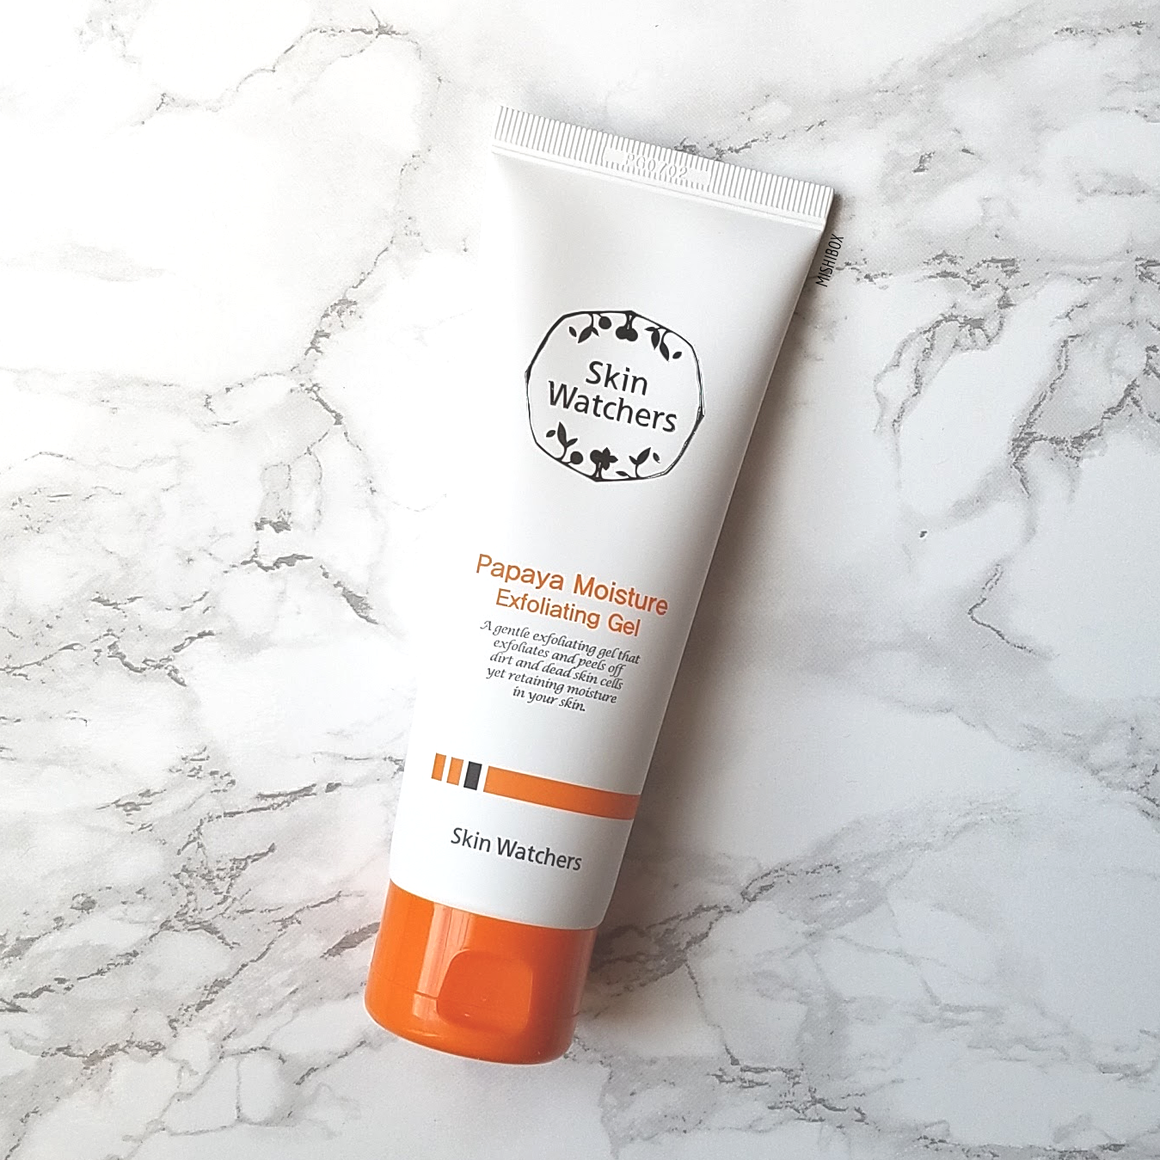 Skin Watchers Papaya Moisture Exfoliating Gel [EXP 07.20.2019]